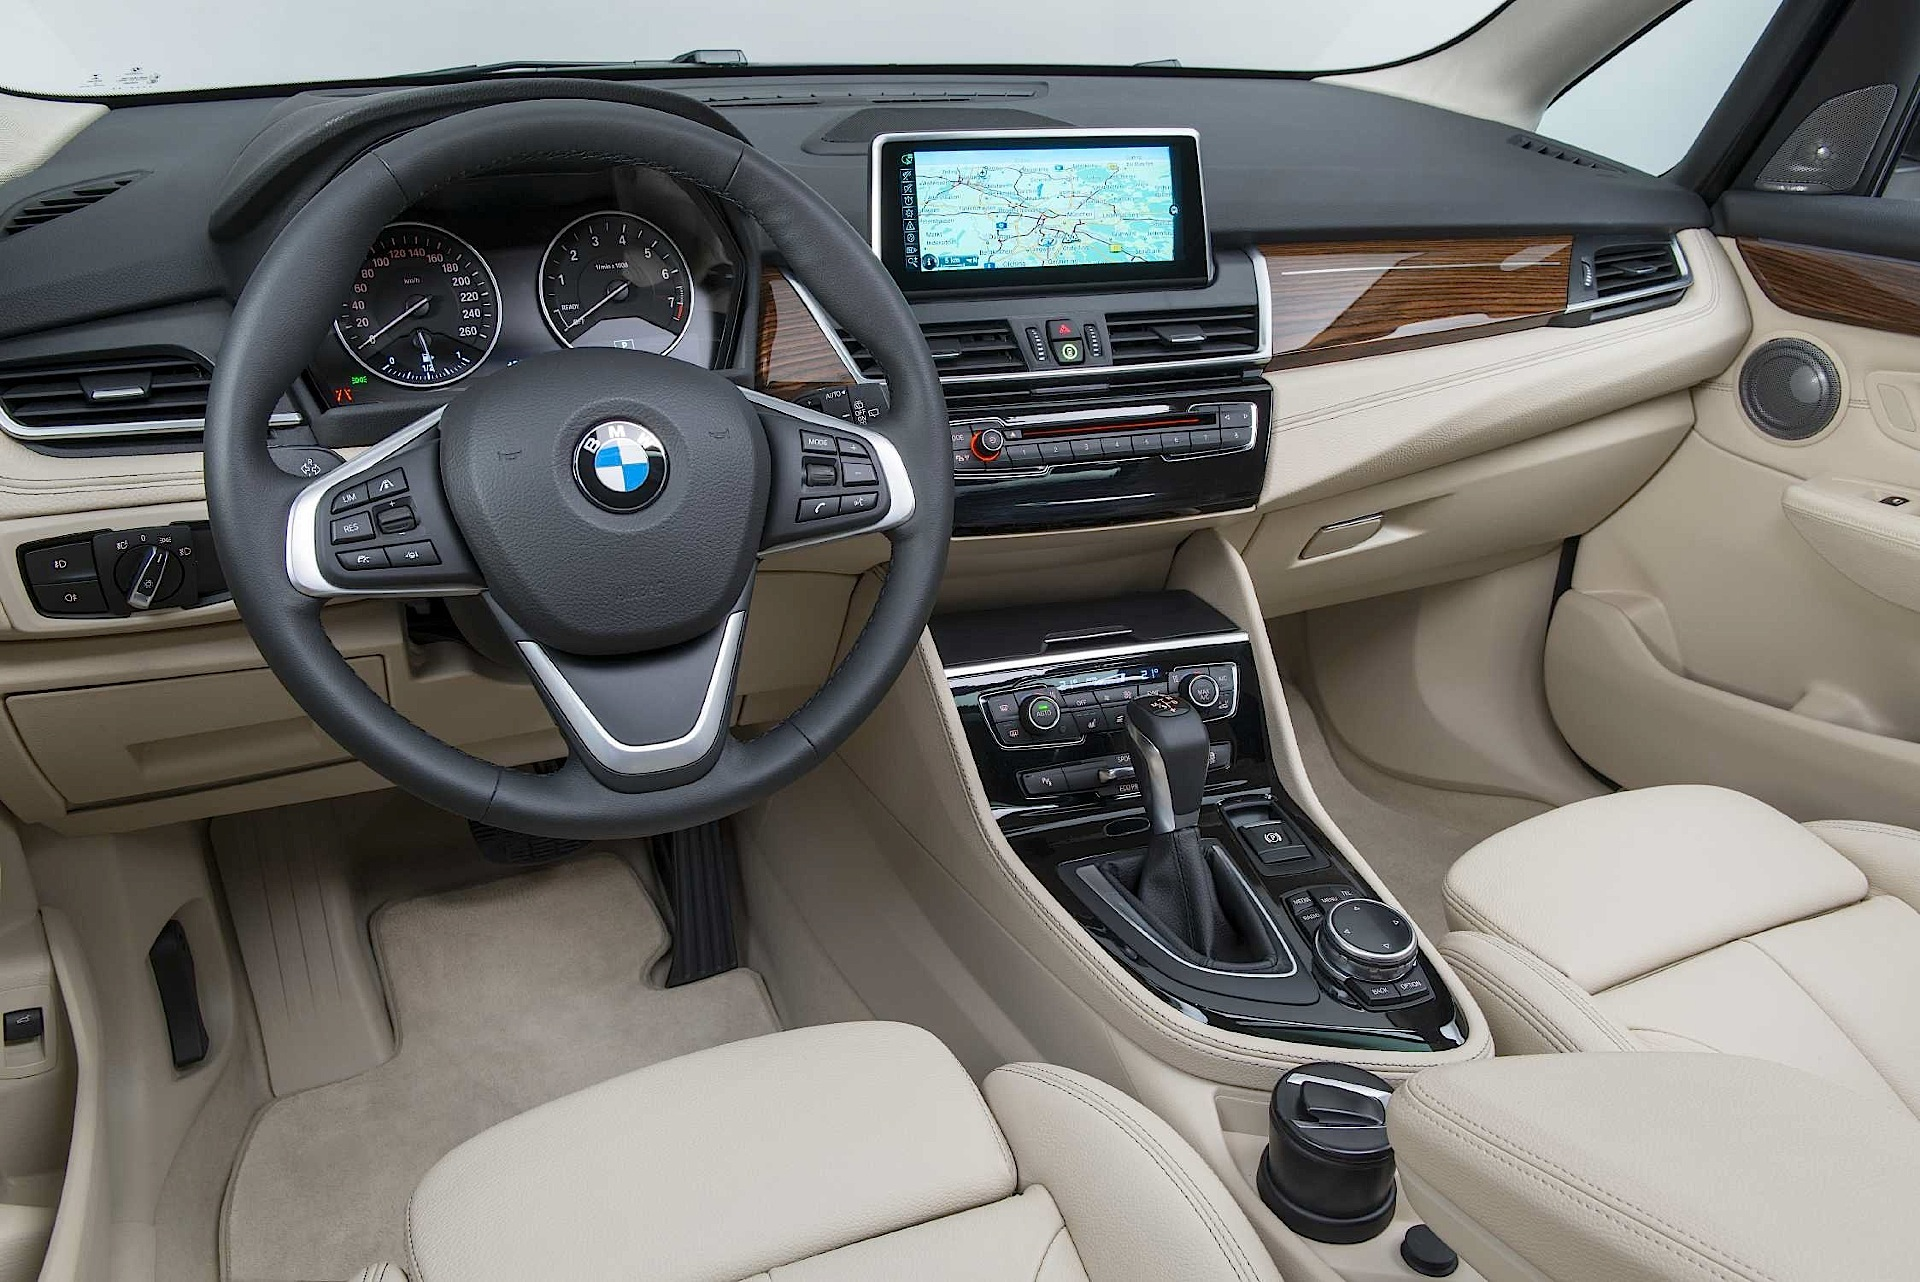 BMW Expands 2 Series Active Tourer Range with 220i, 216d ...